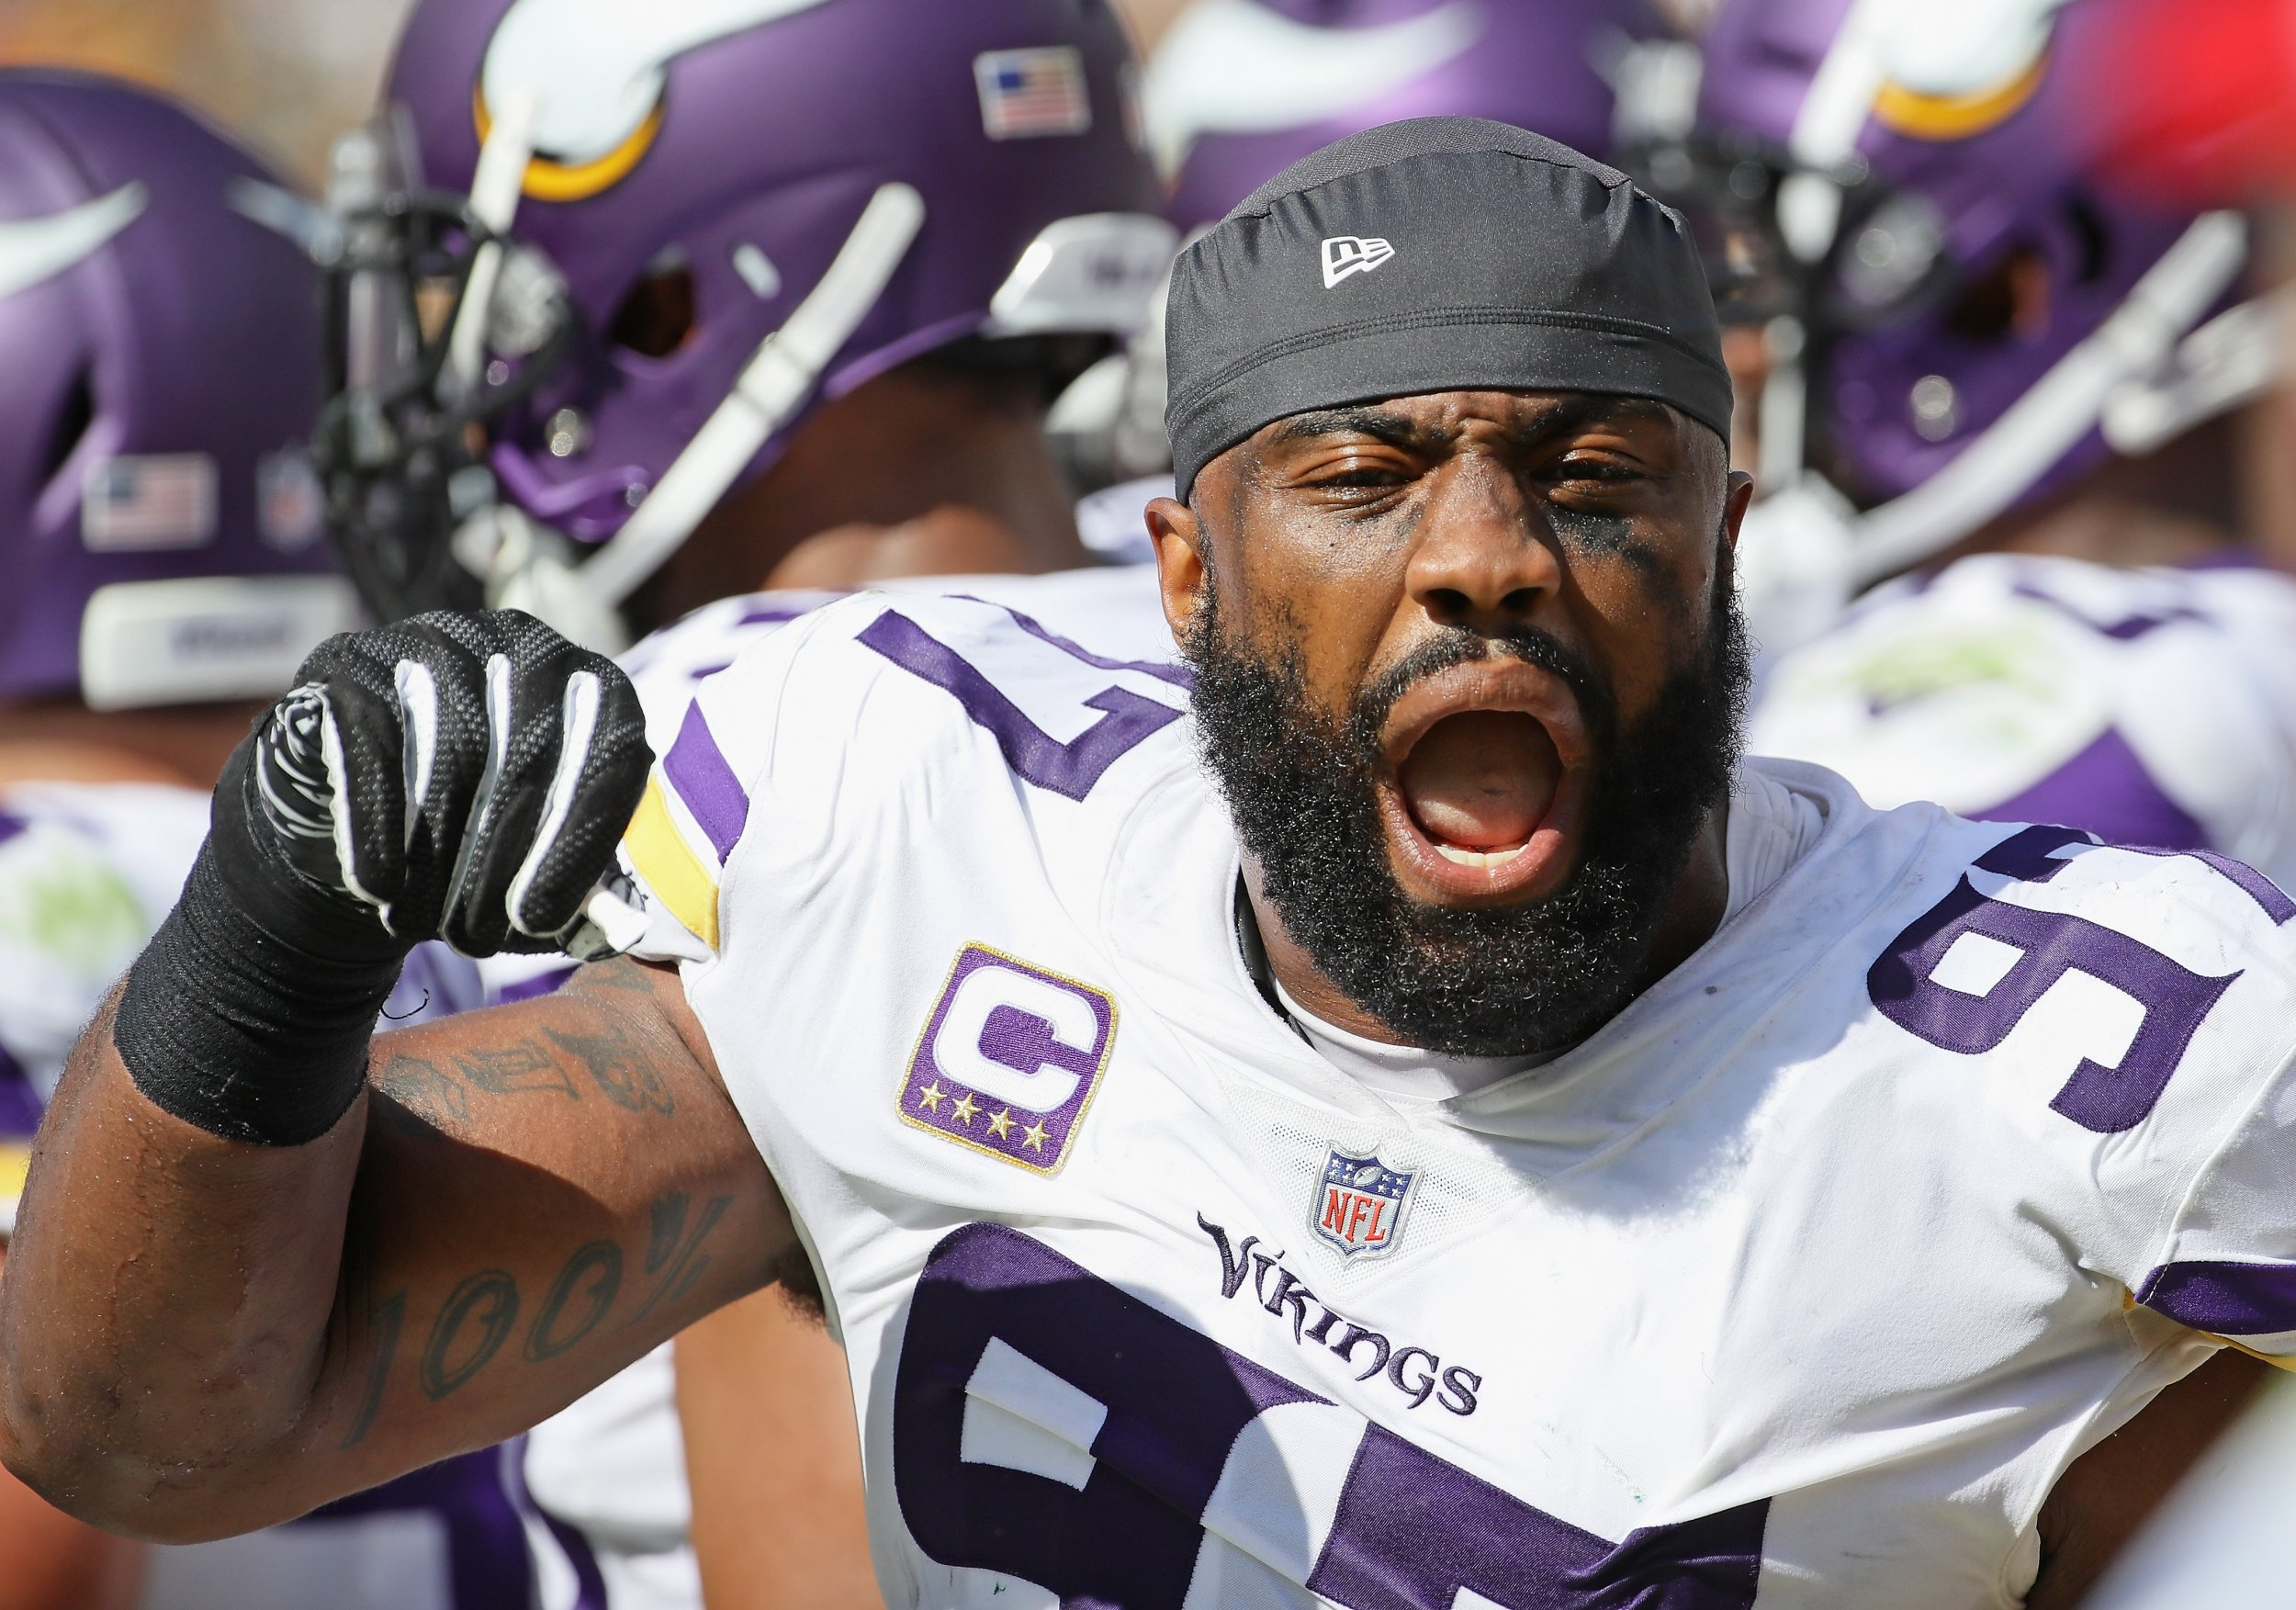 Vikings DE Everson Griffen involved in alleged hotel incident